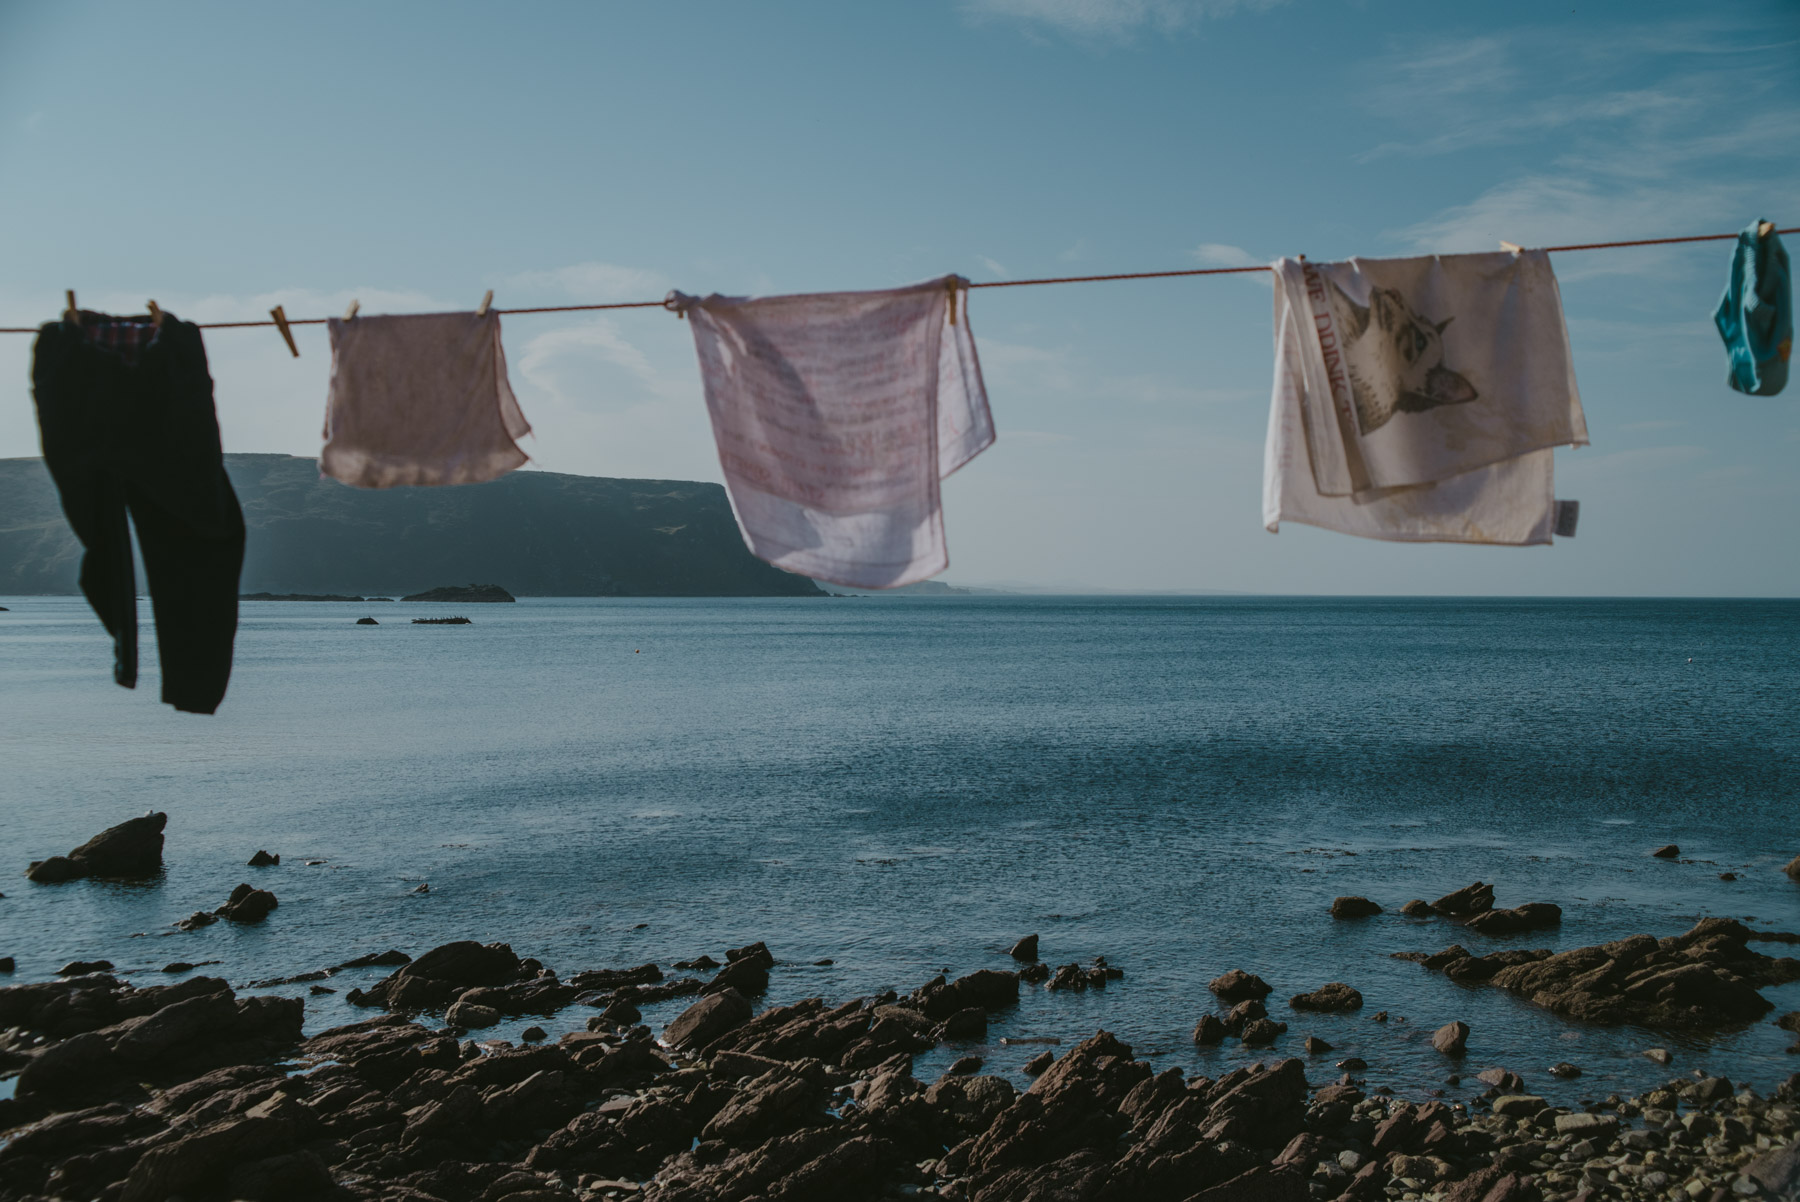 Things hung up to dry in the village of Crovie in Scotland, panni stesi ad asciugare ad un filo nel villaggio di Crovie in Scozia